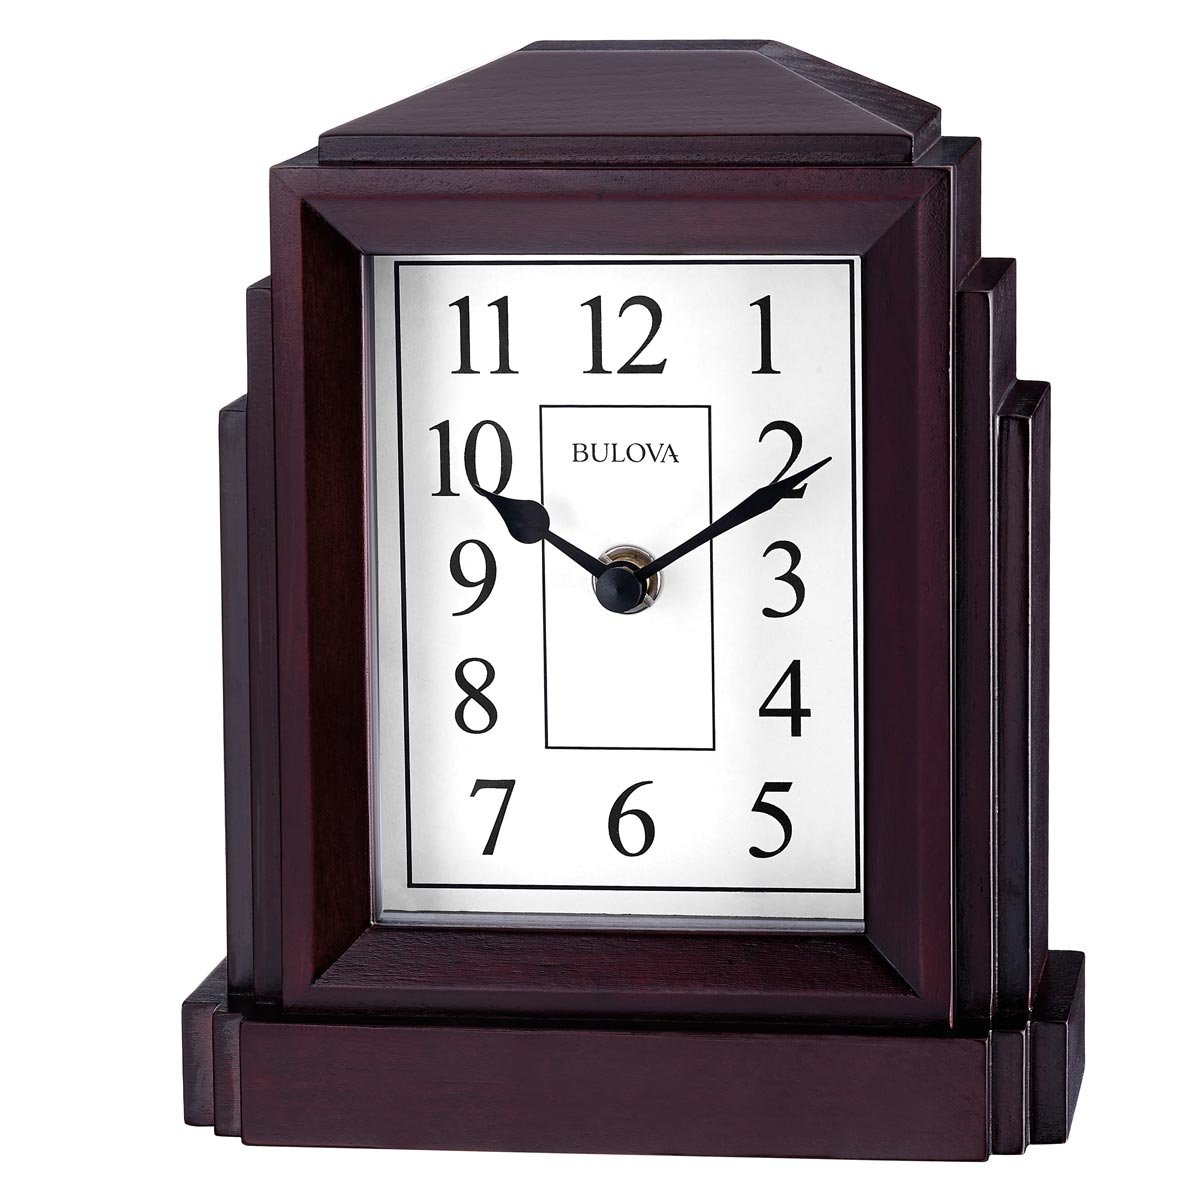 Bulova Empire Mantel Clock by Bulova